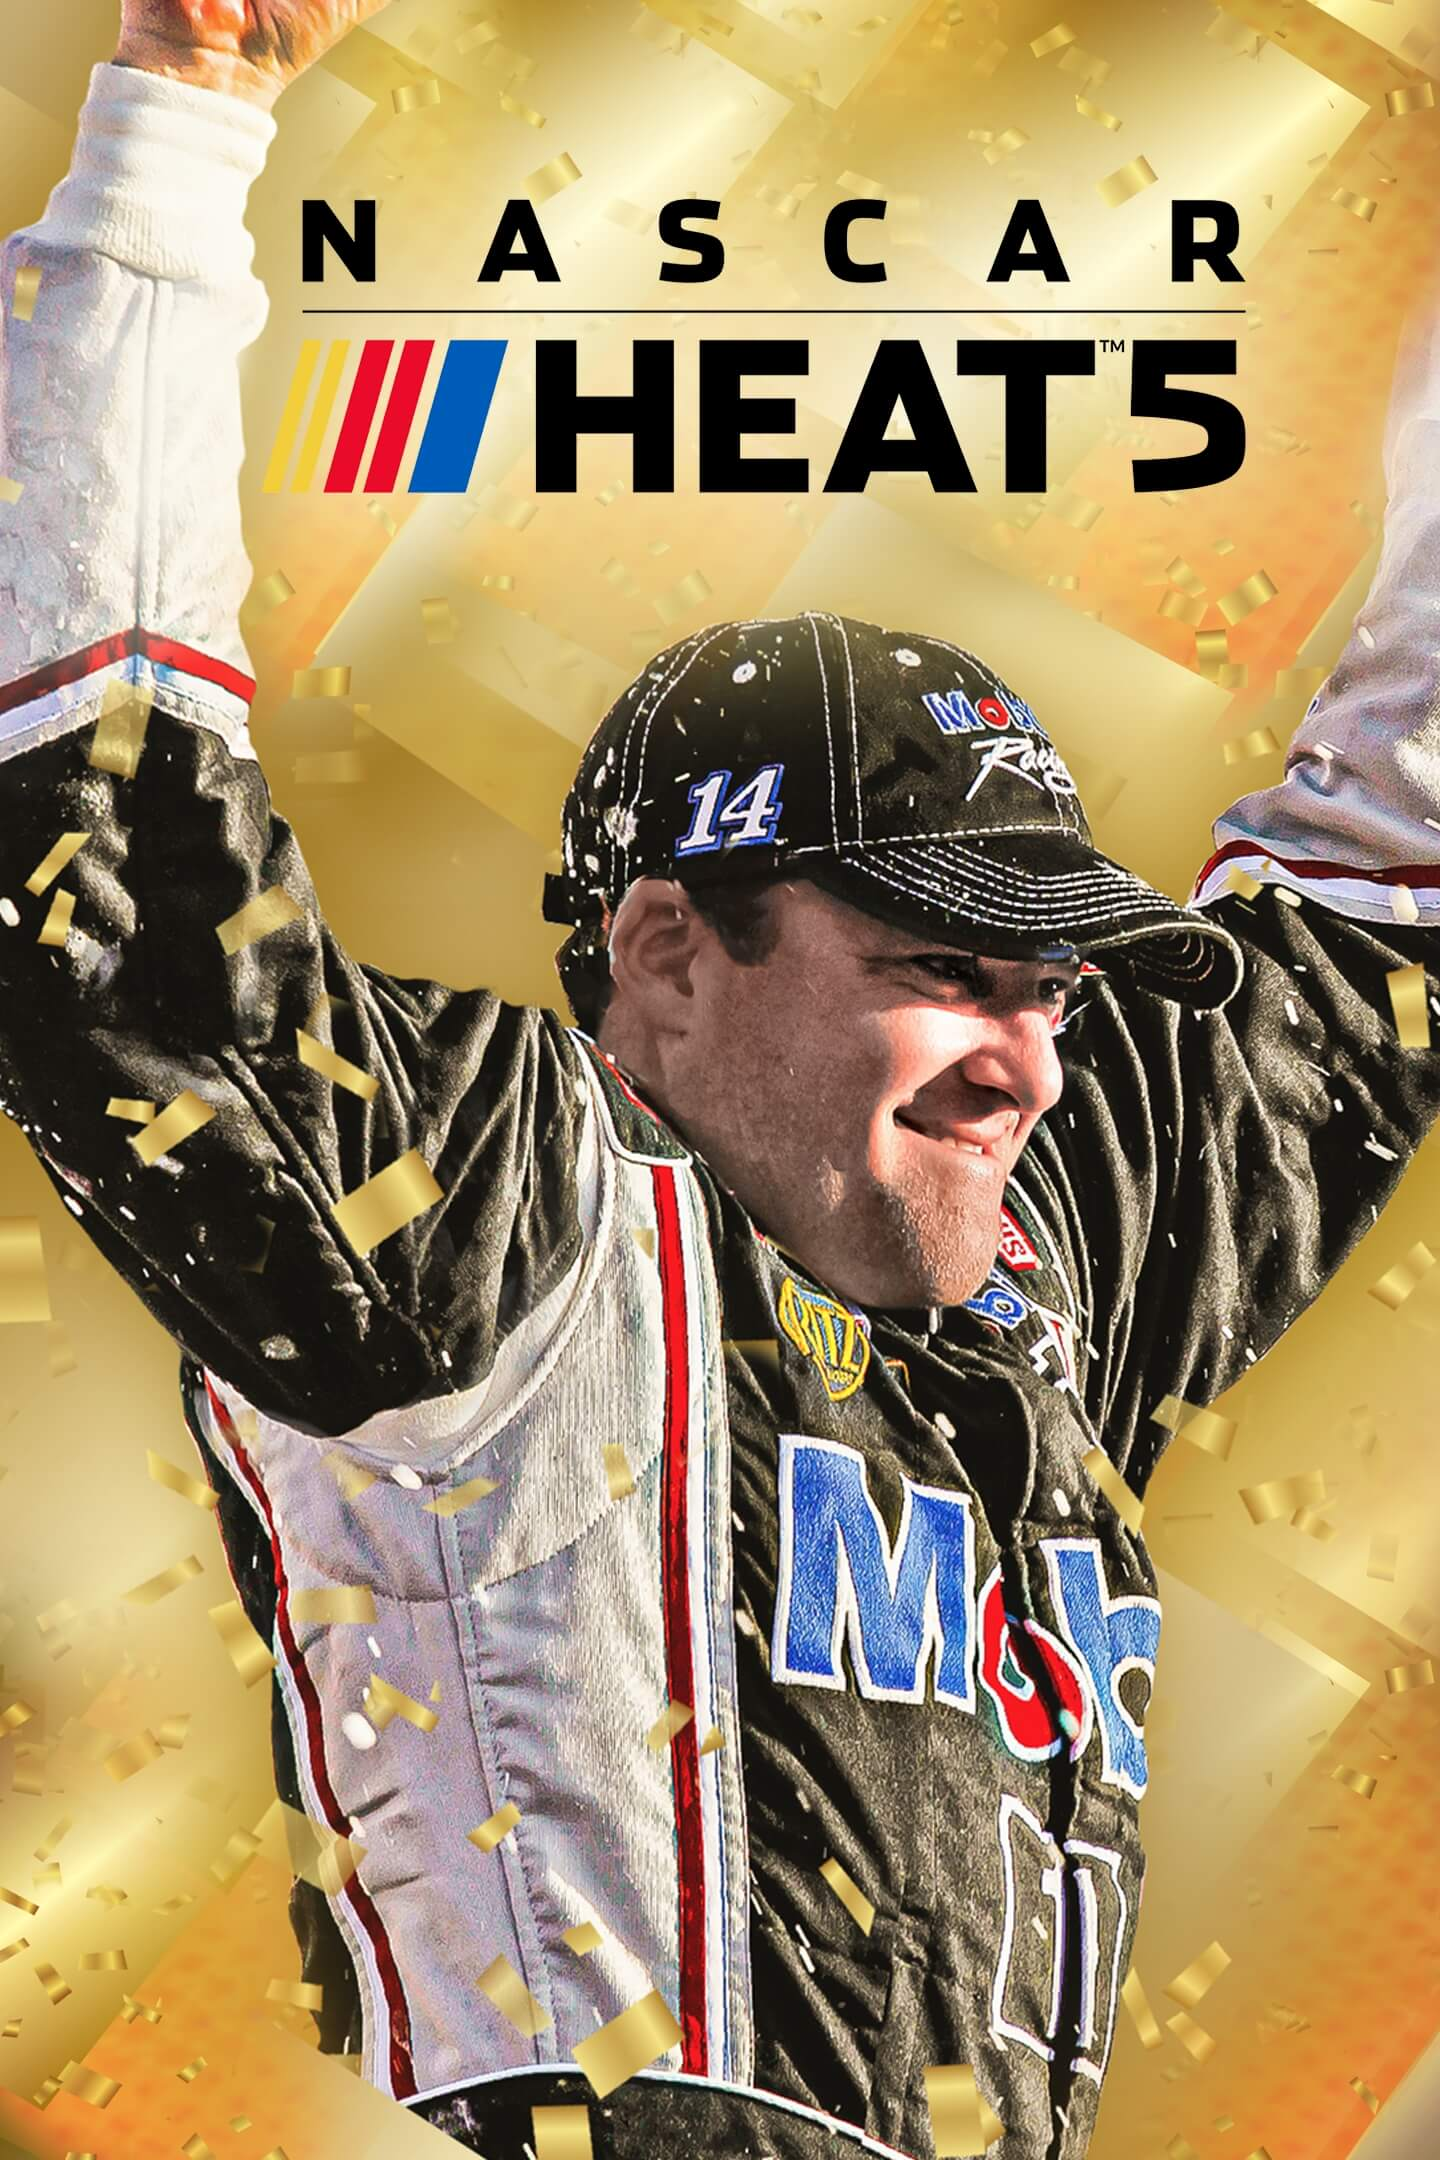 https://img5.downloadha.com/hosein/files/2020/07/NASCAR-Heat-5-pc-cover-large.jpg